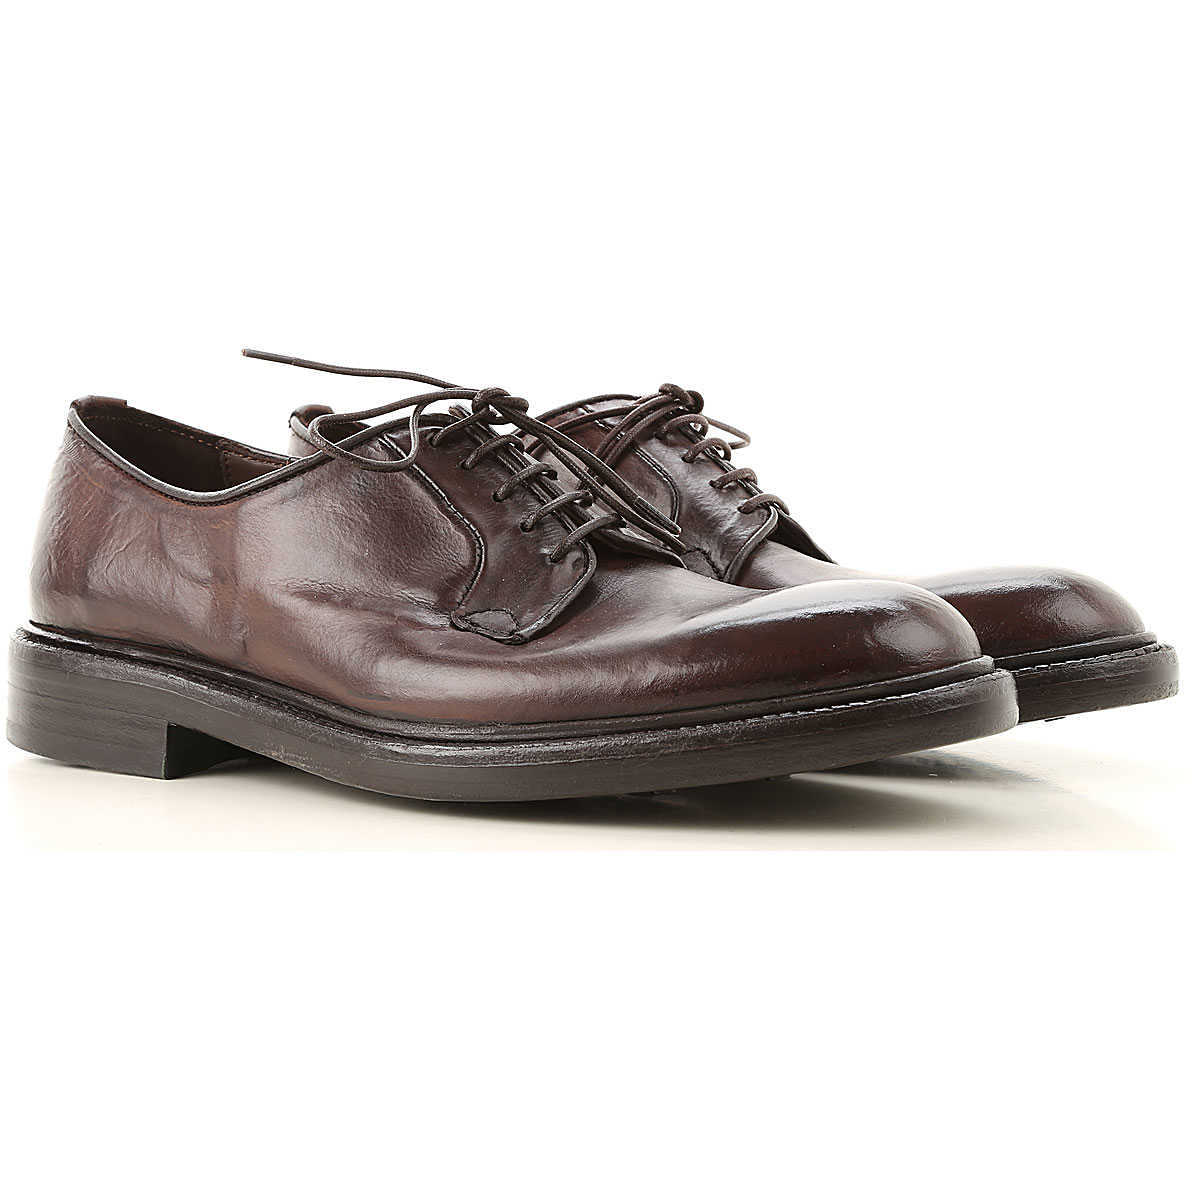 Green George Lace Up Shoes for Men Oxfords 10 11 7 8 8.5 9 Derbies and Brogues UK - GOOFASH